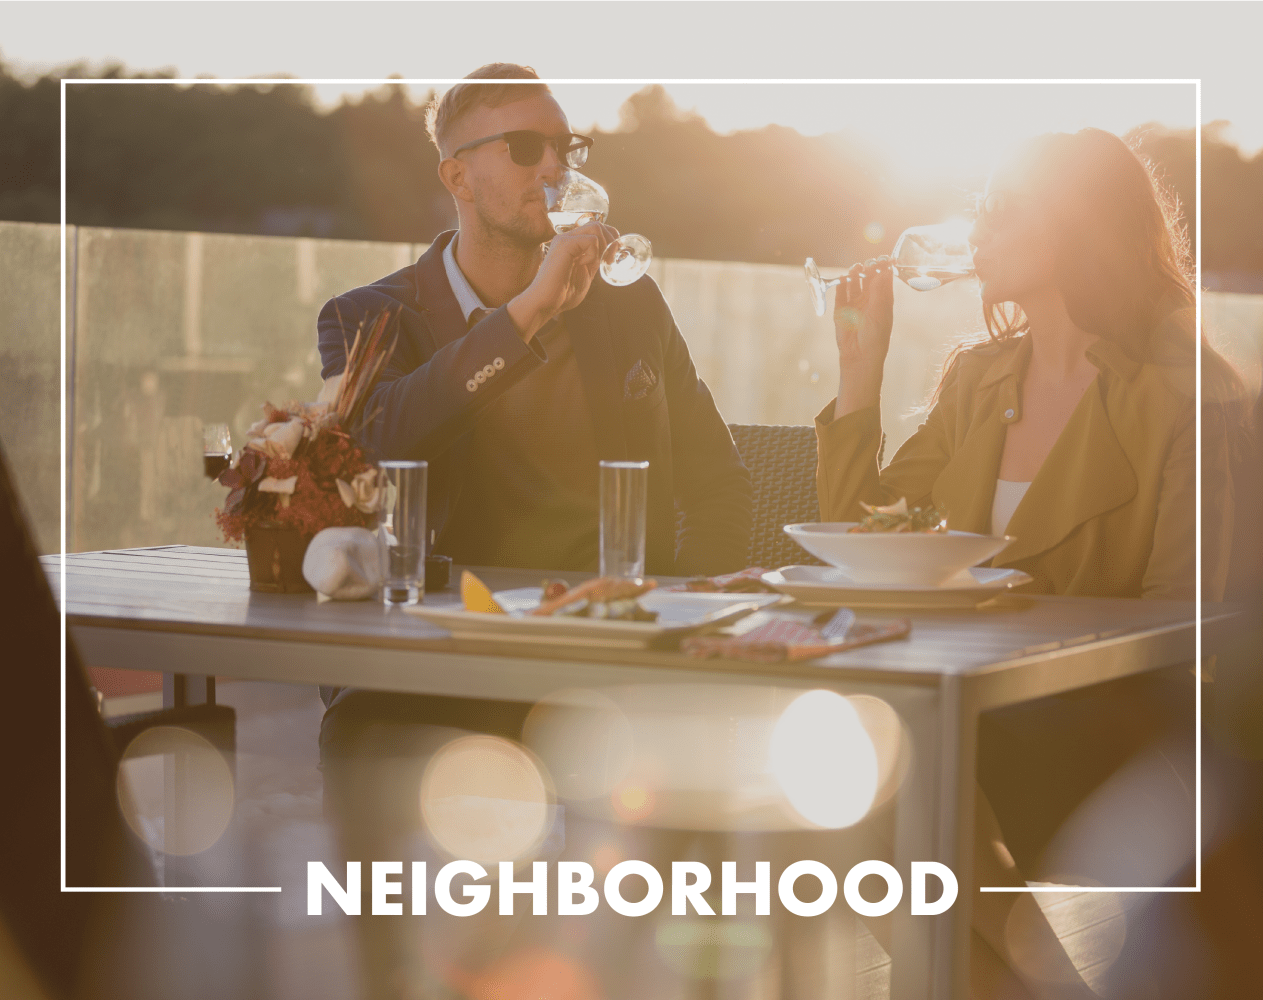 View the neighborhood information near Polo Run Apartments in Tulsa, Oklahoma